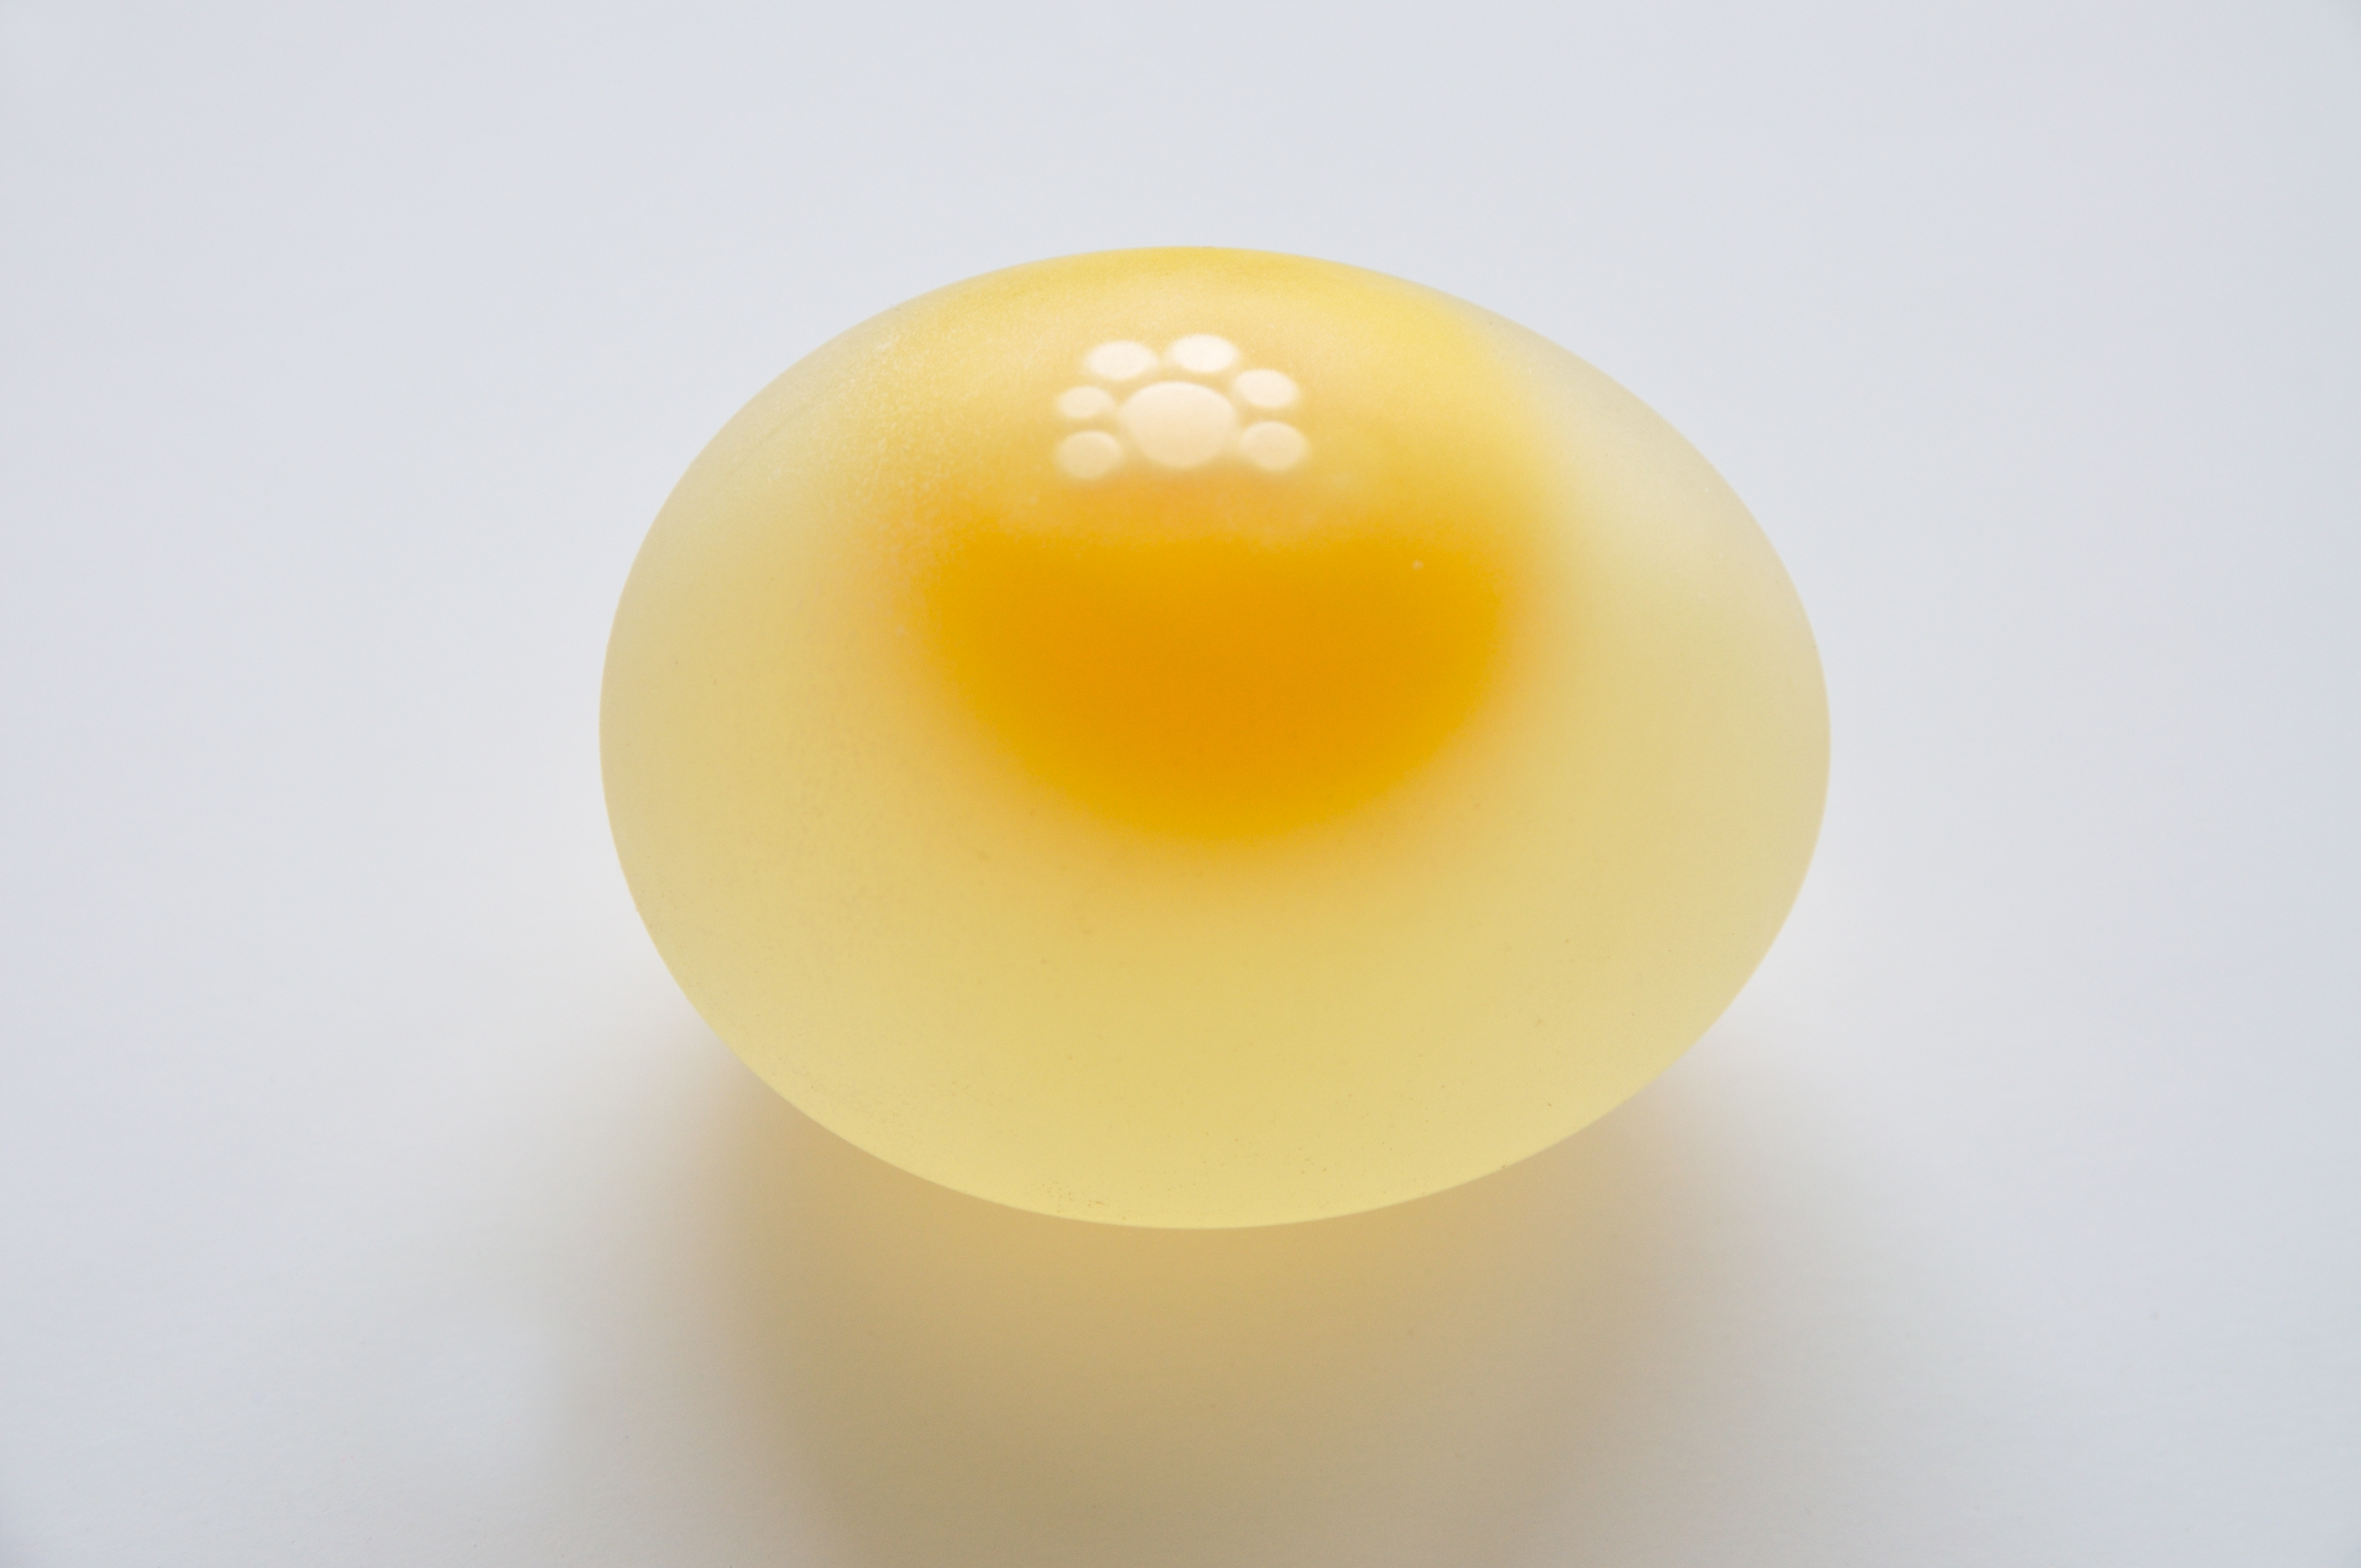 Chicken_Egg_without_Eggshell_5859.jpg